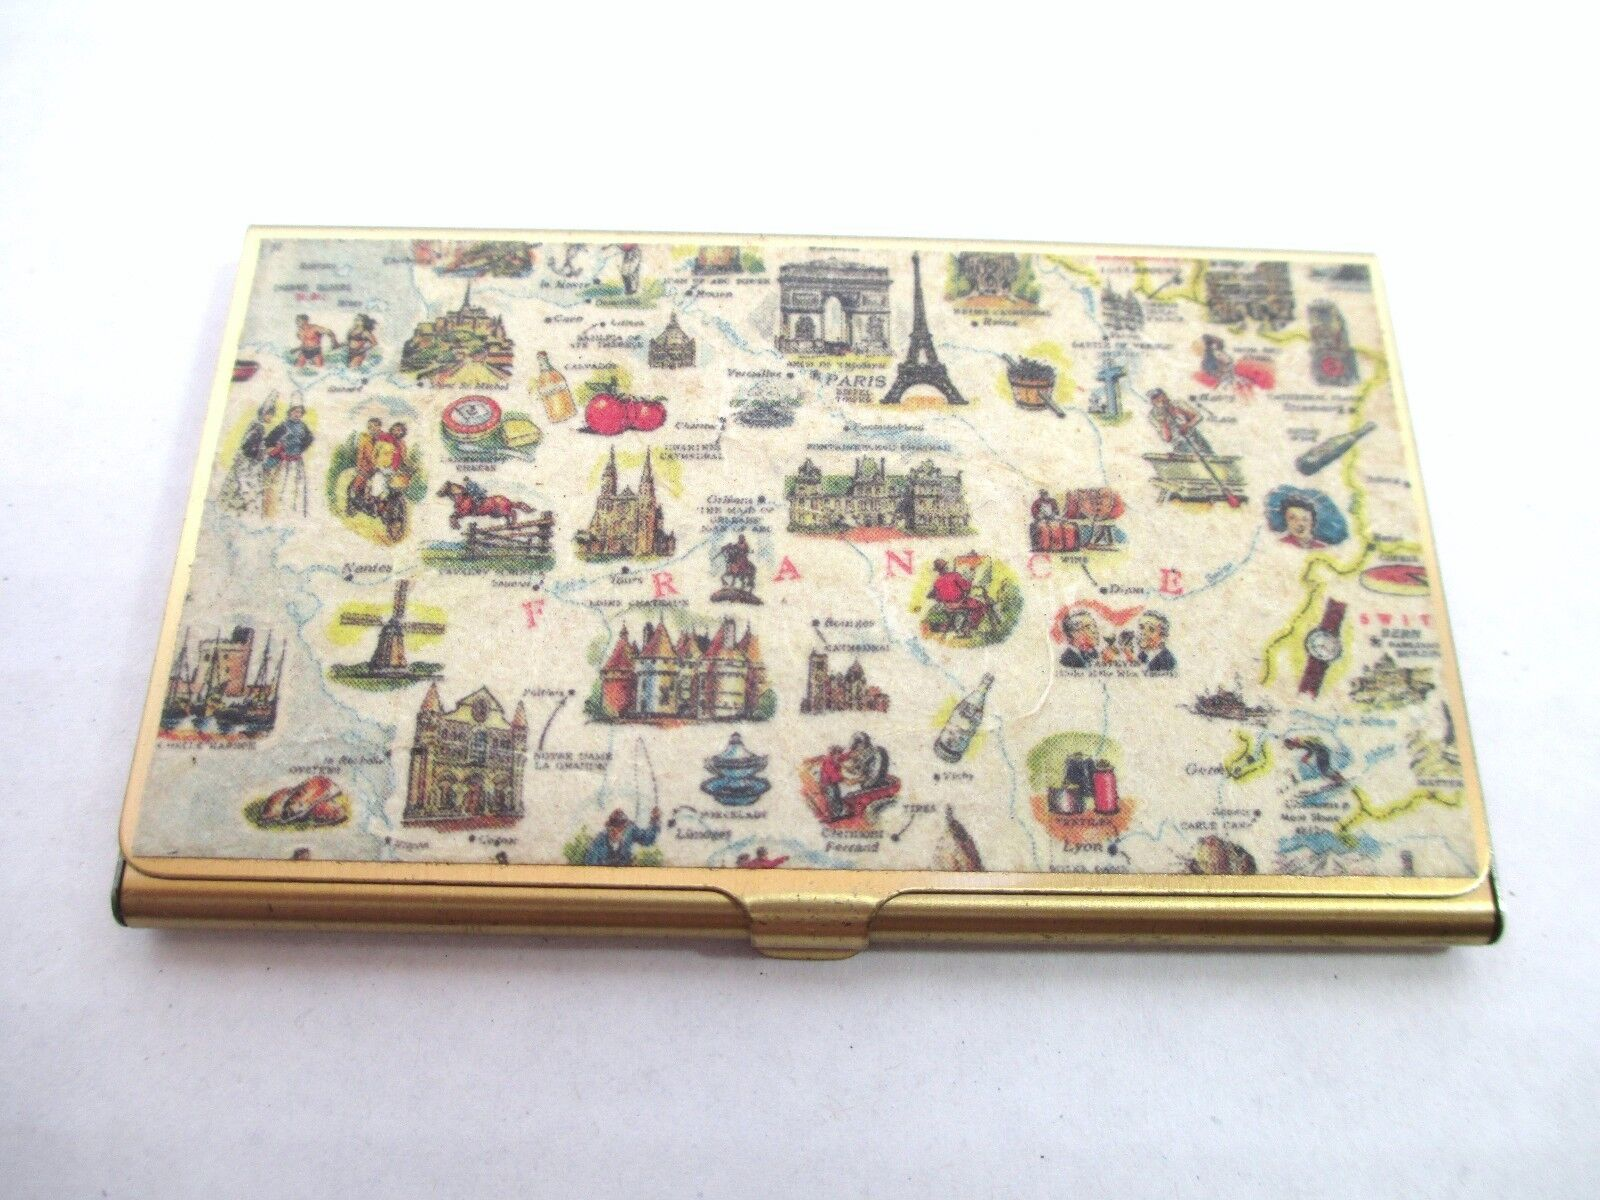 Unusual vintage french france business card or credit card holder unusual vintage french france business card or credit card holder map 1 reheart Gallery